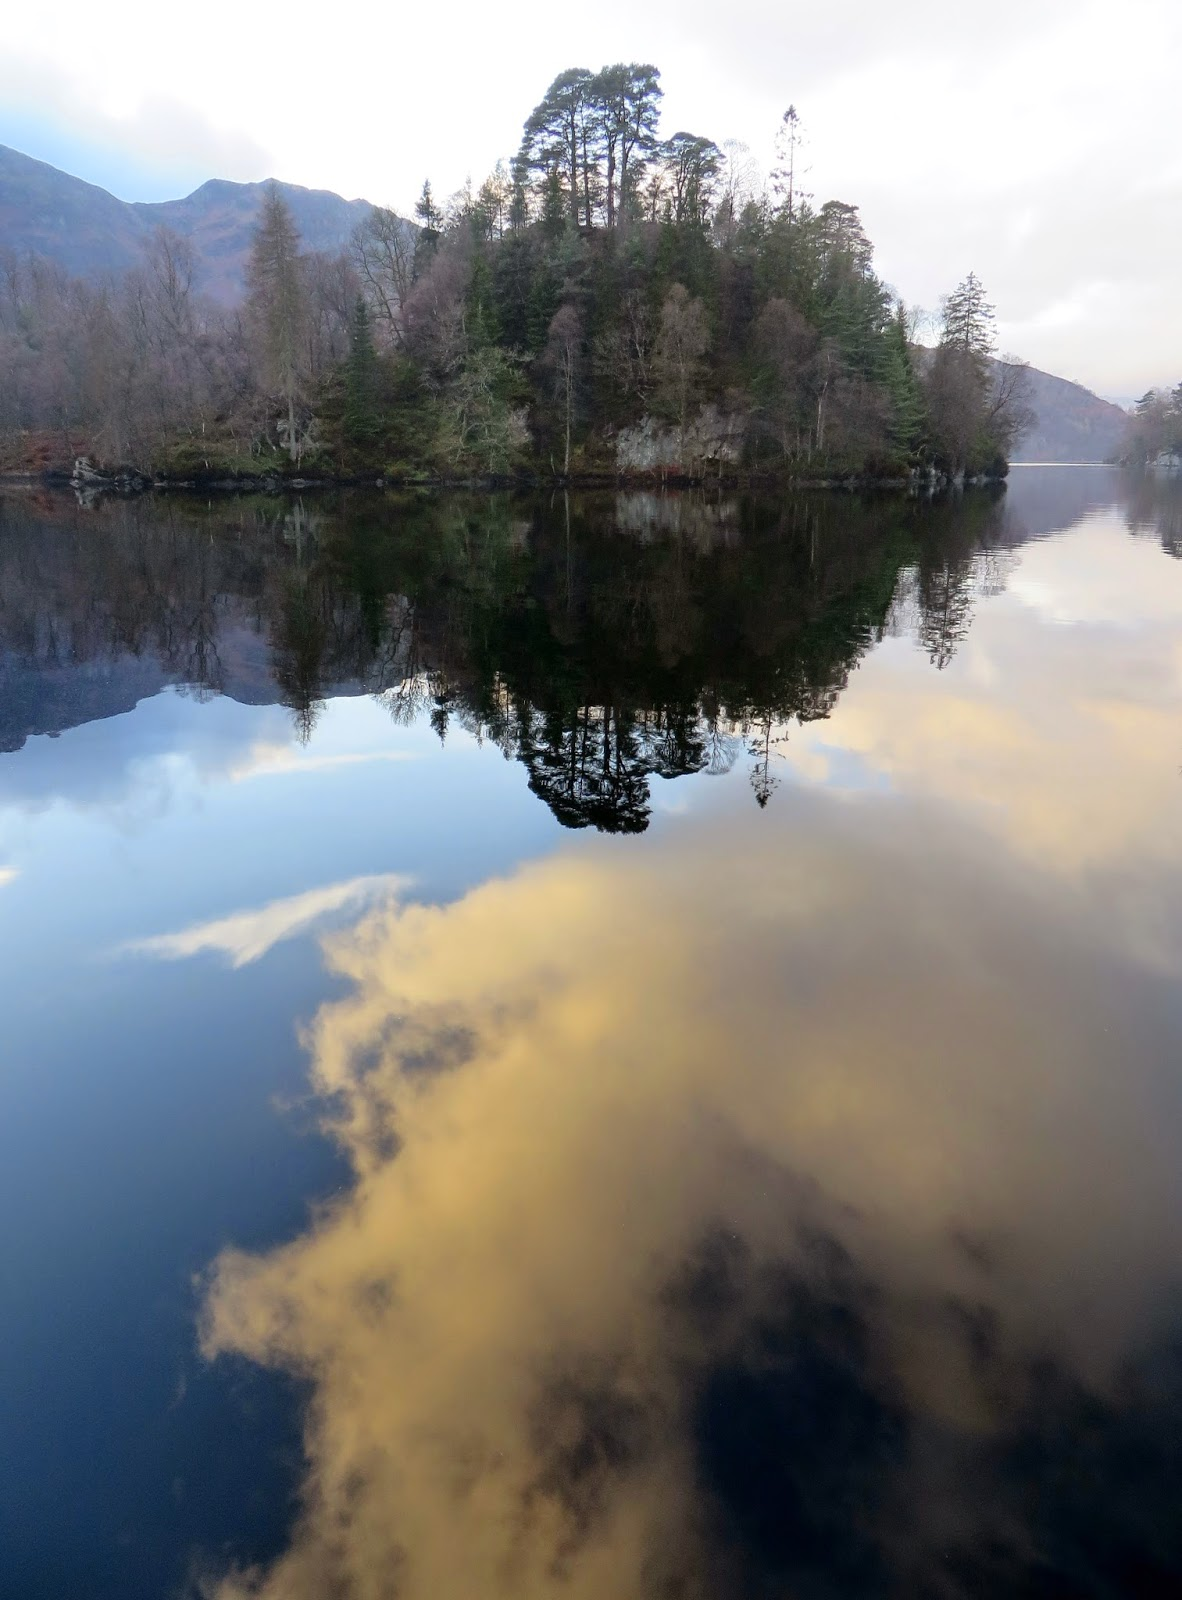 Loch Katrine, Lake Katrine, Scotland, Beautiful, glass lake, lady of the lake, Sir Walter Scott, Hairy Coo Tour